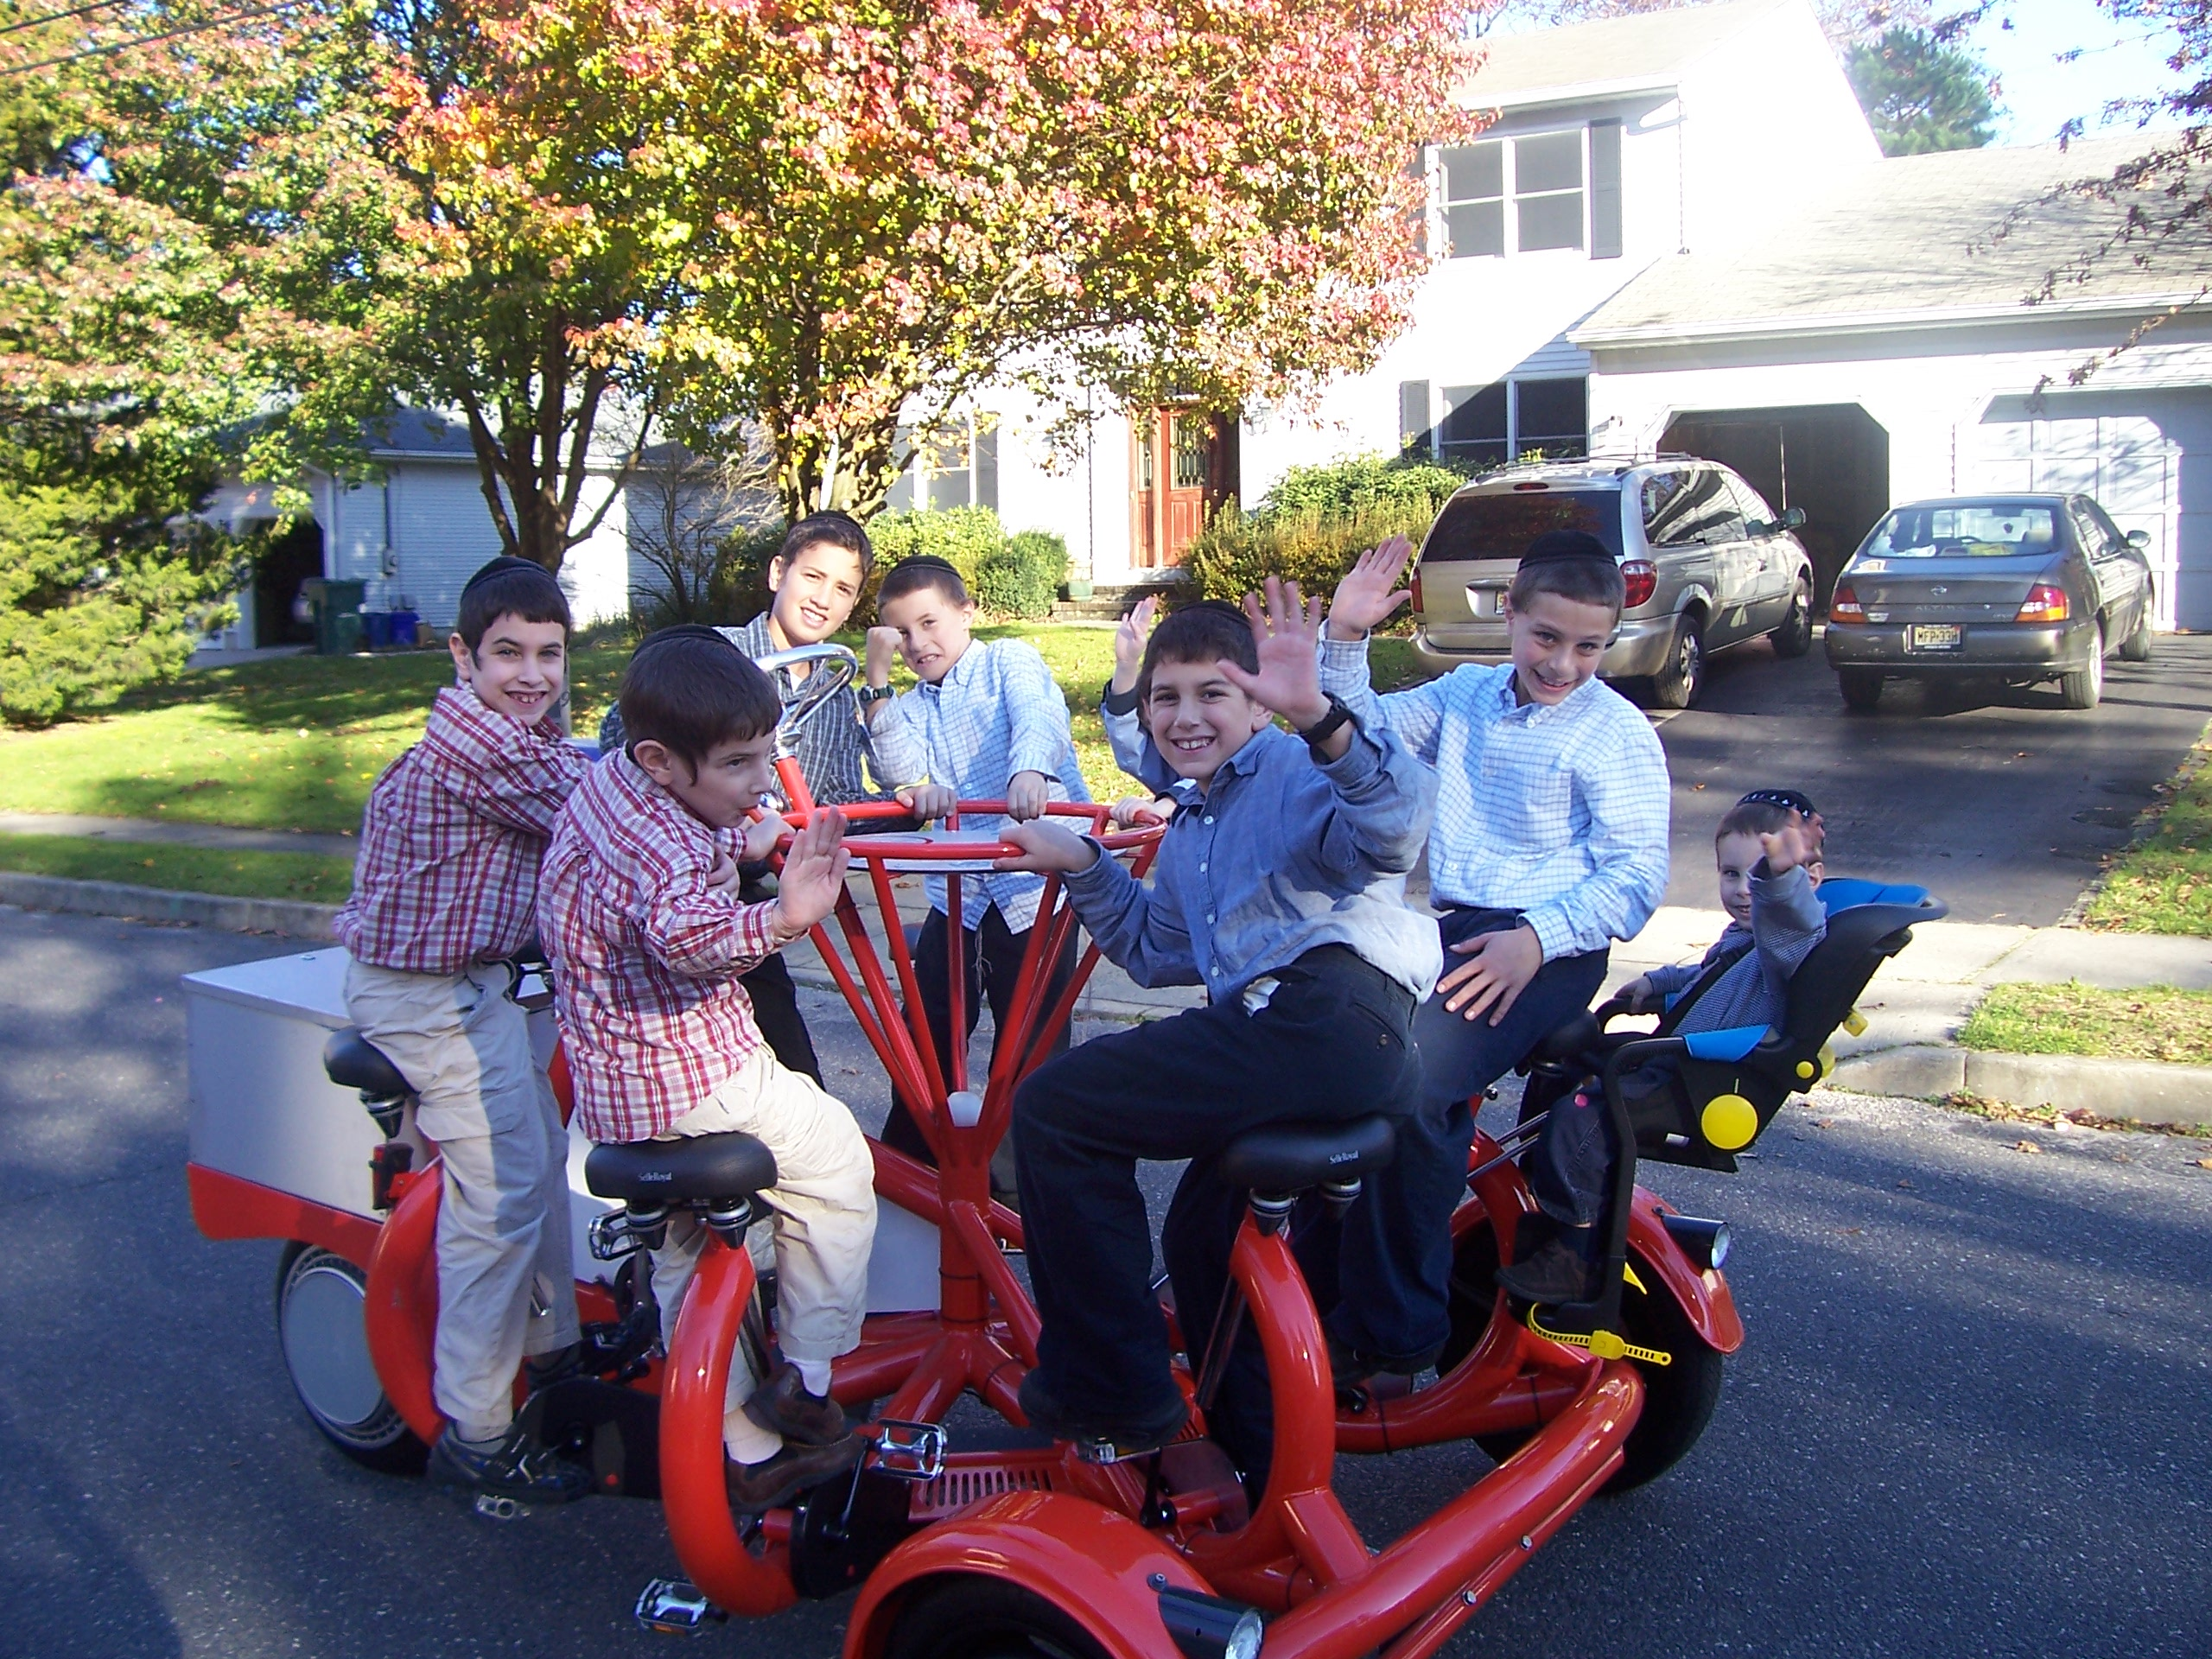 Conference bike with multiple riders